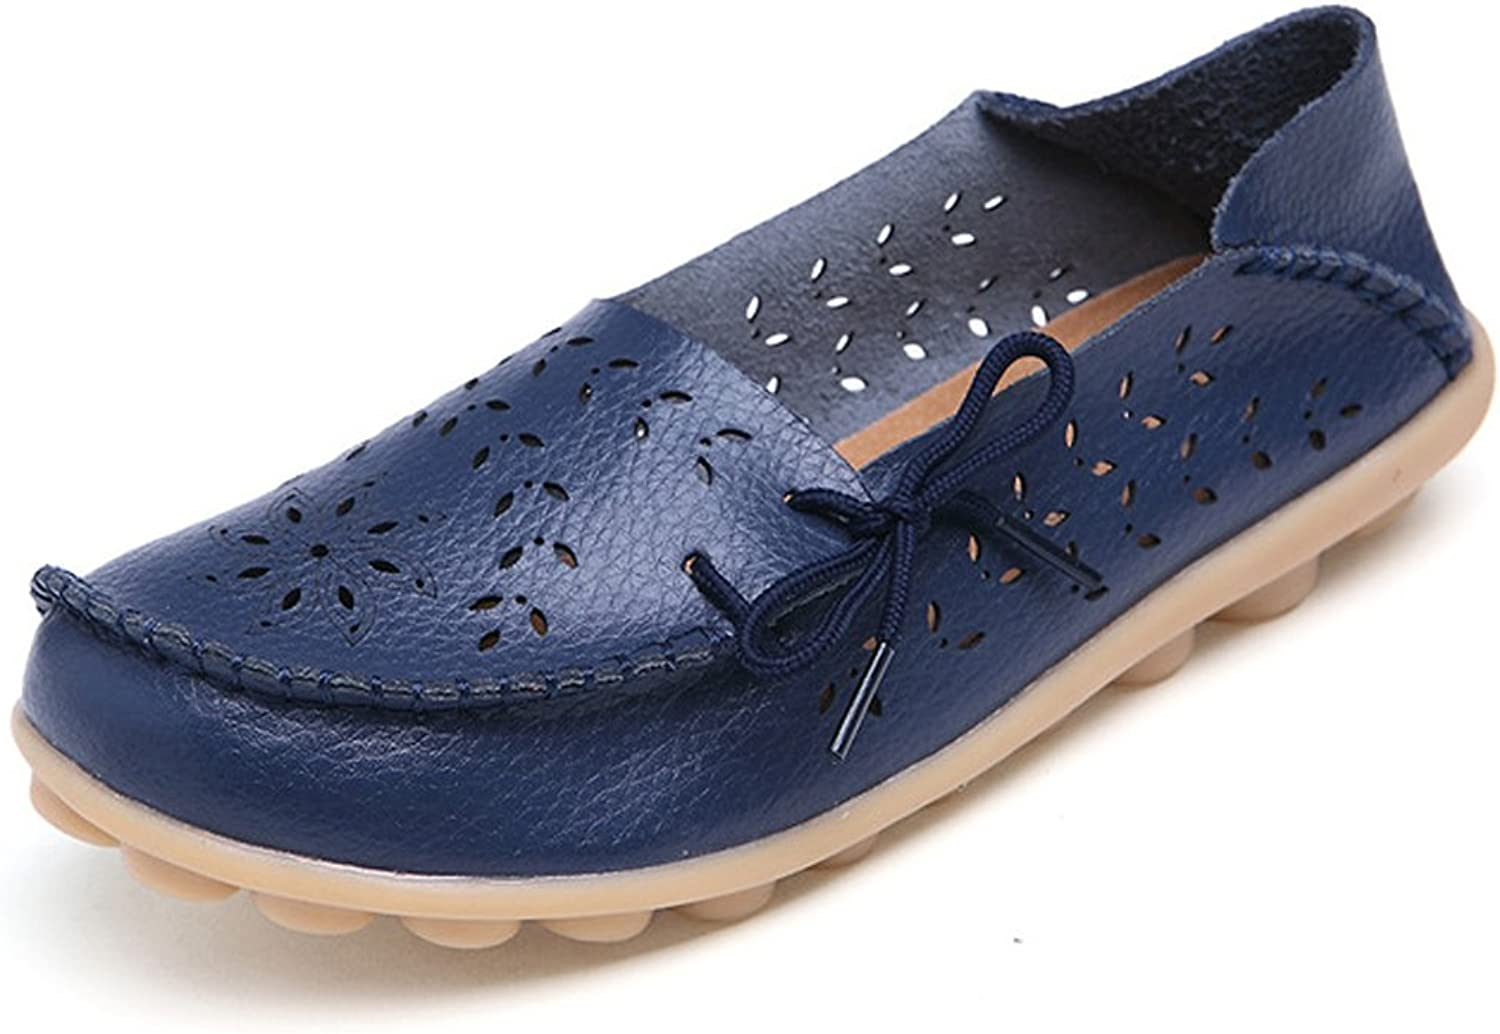 DUOYANGJIASHA Fashion Brand Best Show Women's Leather Loafers Flats Casual Round Toe Moccasins Wild Breathable Driving shoes Dark bluee